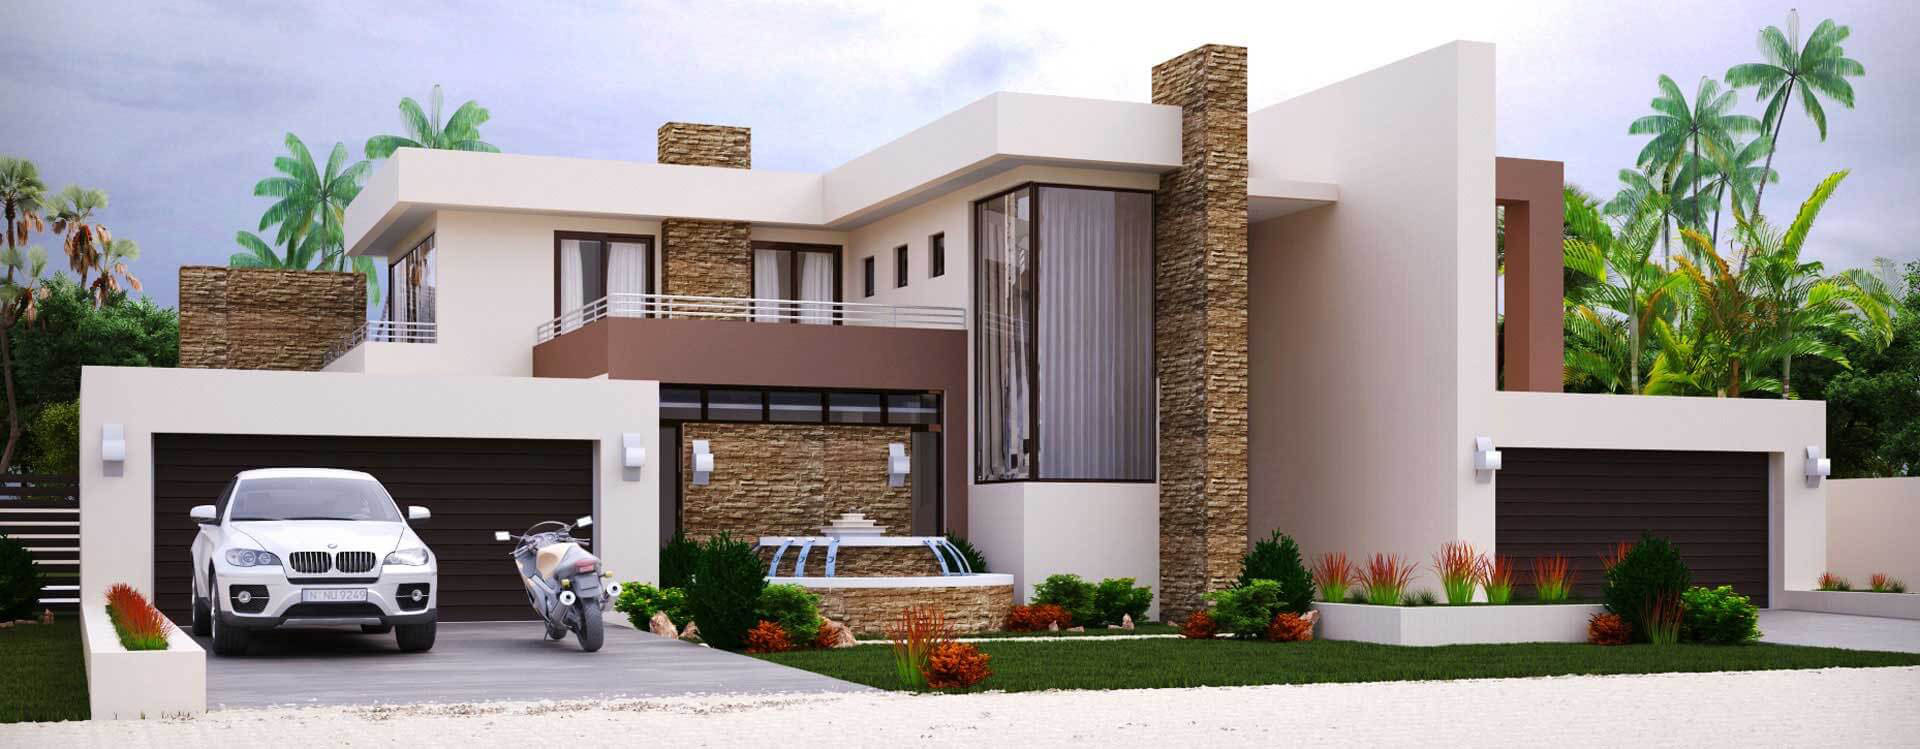 contemporary 4 bedroom house plans 4 bedroom house plan modern home design 18536